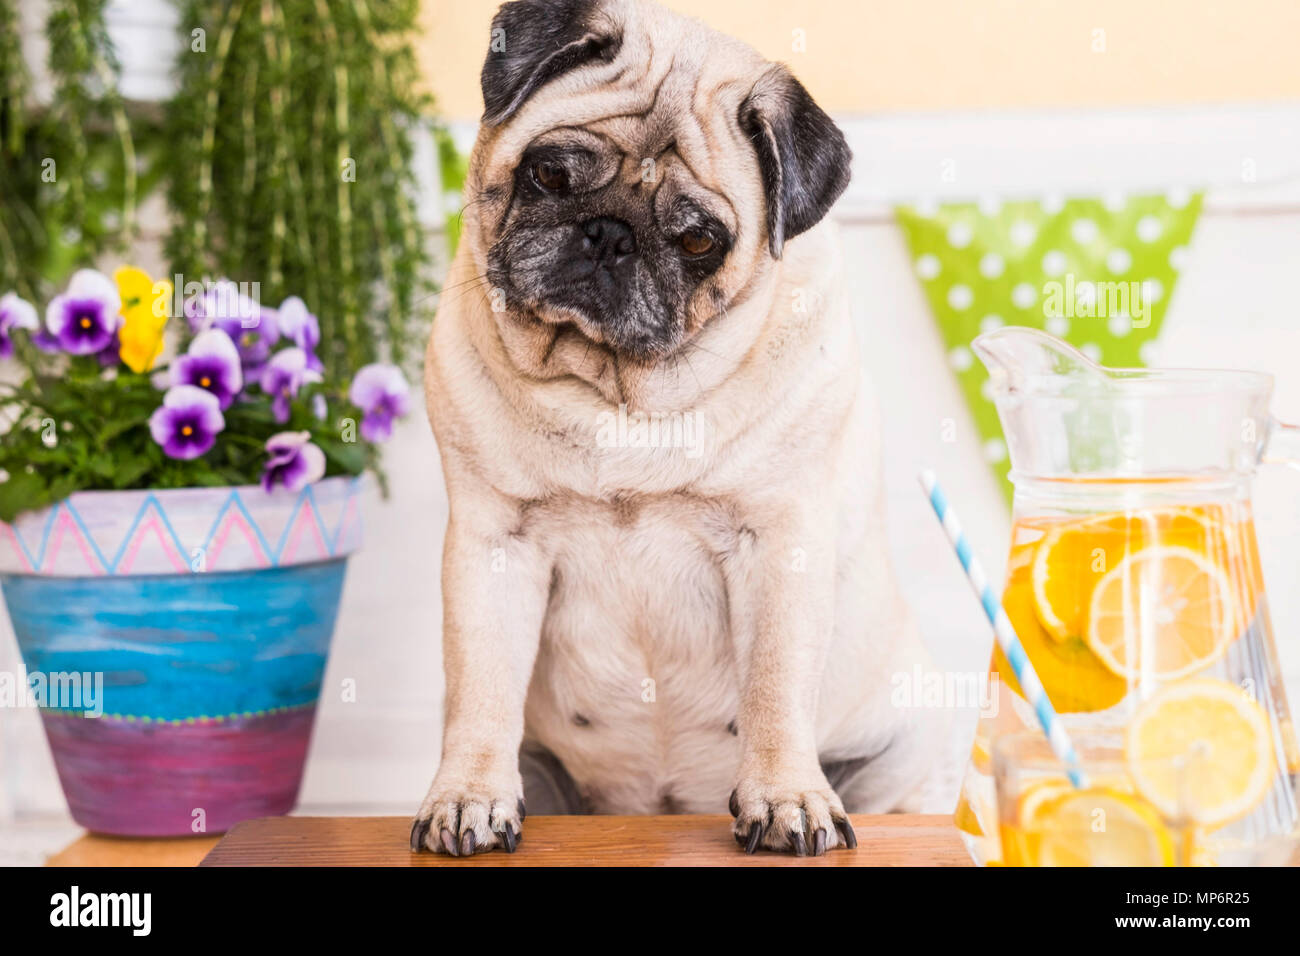 hungry dog pug funny start diet and healthy lifestyle with water and lemon to depurate the body. fitness outdoor leisure activity with nice food and d - Stock Image